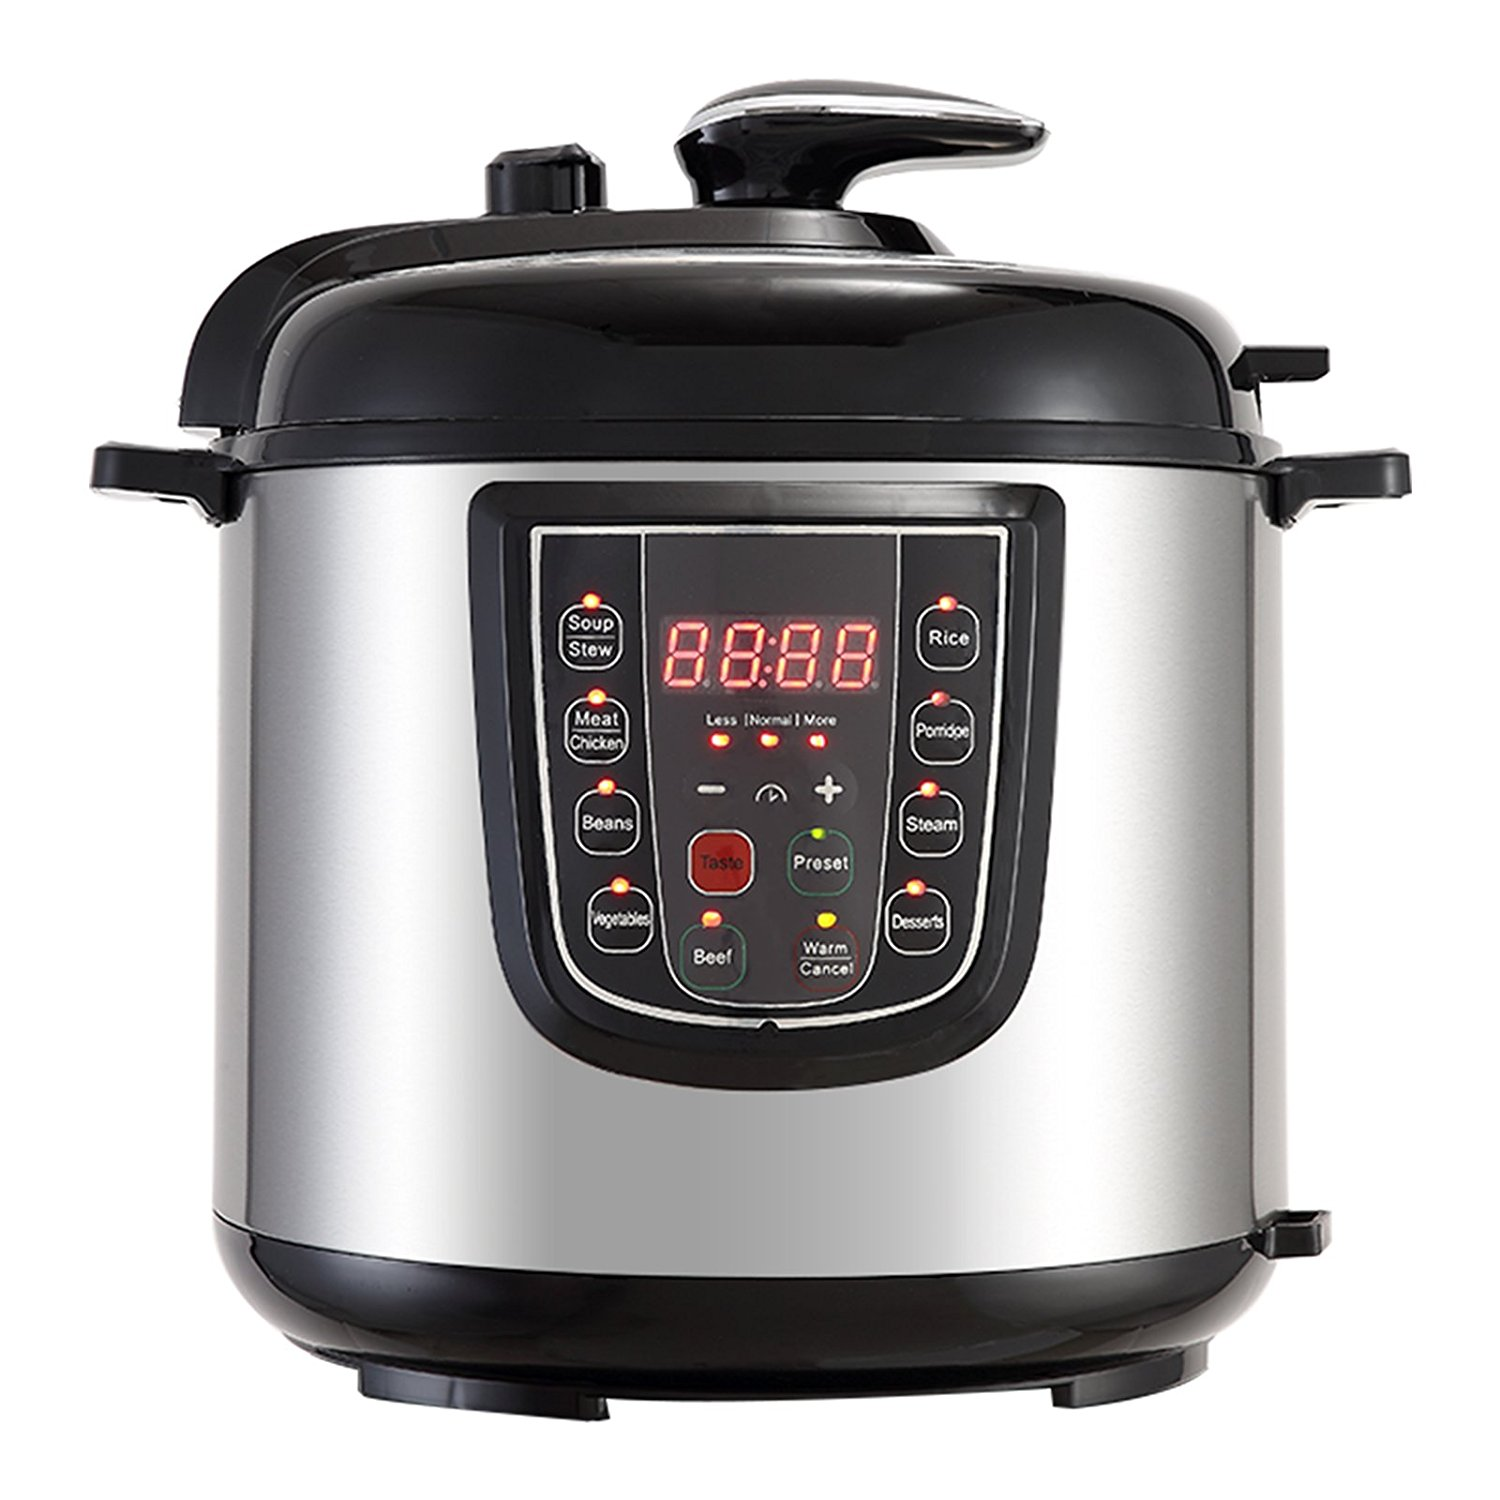 Mecor 6QT 5-IN-1 SX100A-W Electric Multi- Use Programmable Cooker (Pressure Cooker,Rice Cooker,Steamer, Warmer,Etc.) Stainless Steel,Silver